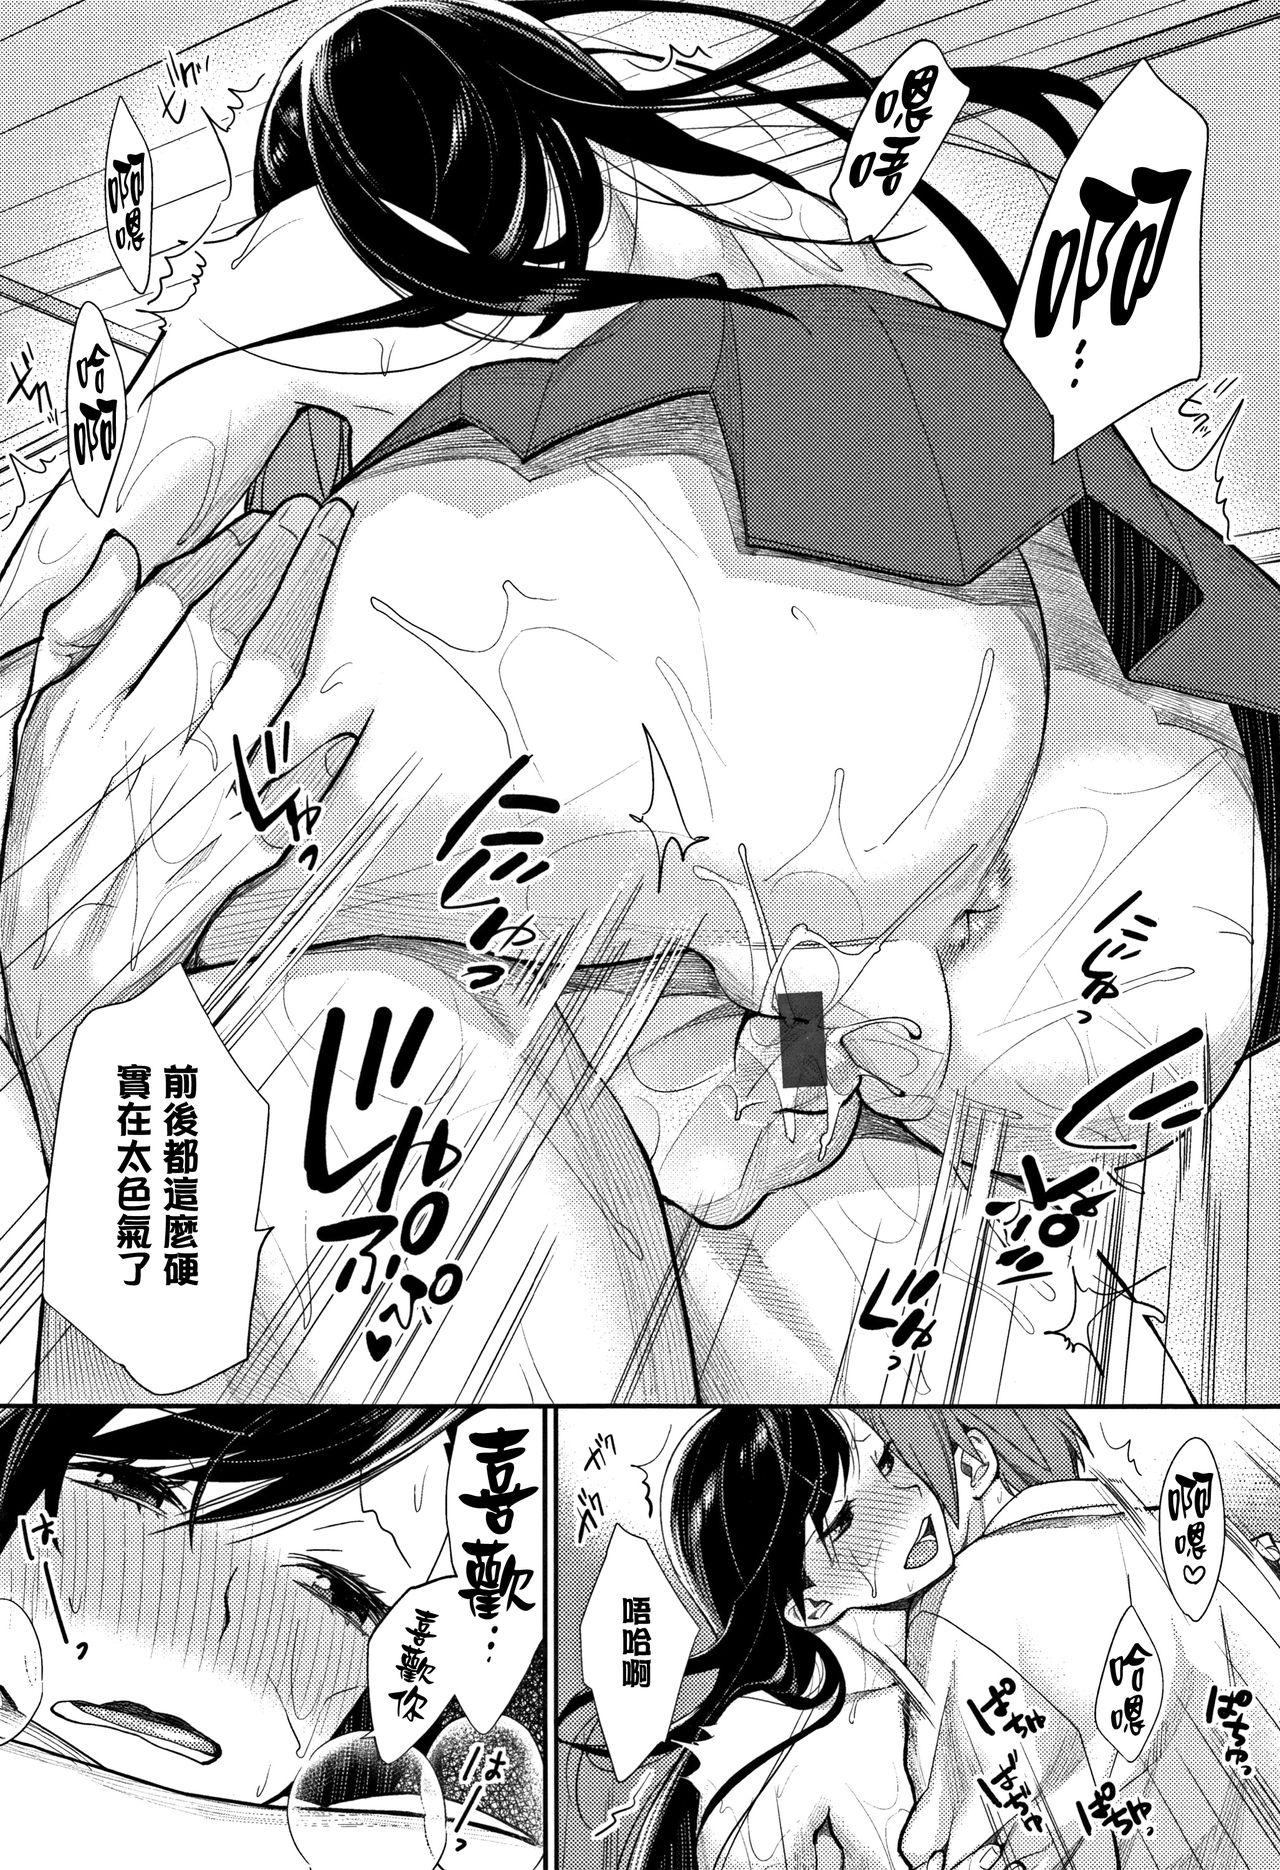 [MGMEE] Bokura no Etude - Our H Chu Do Ch.1-7 [Chinese] [無邪気漢化組] 73